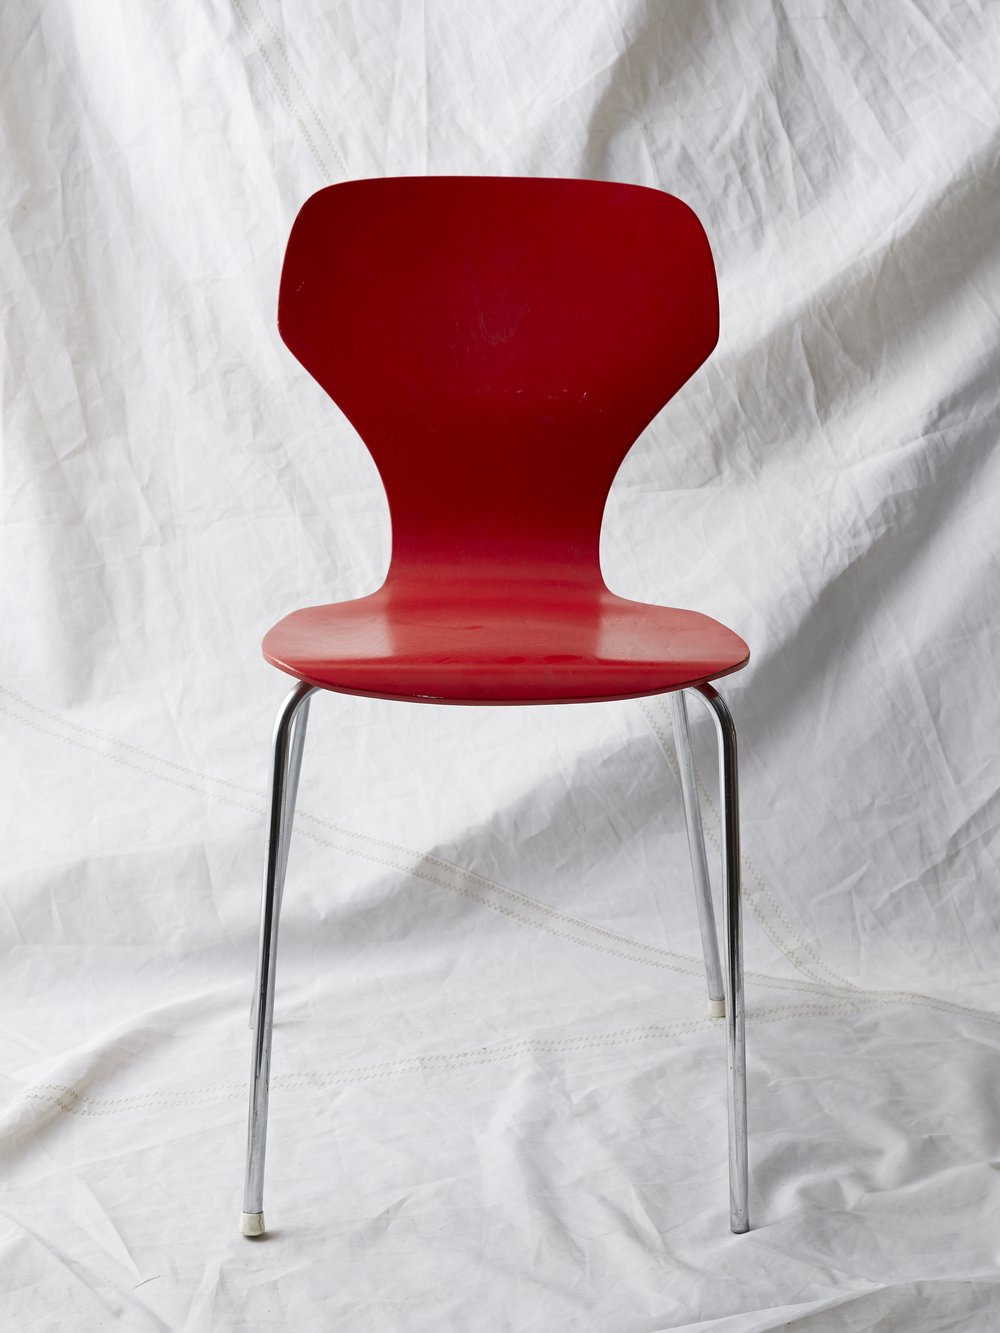 "CH018  Arne Jacobson style red chair 32"" H x 18"" W x 19"" D  $75/week"